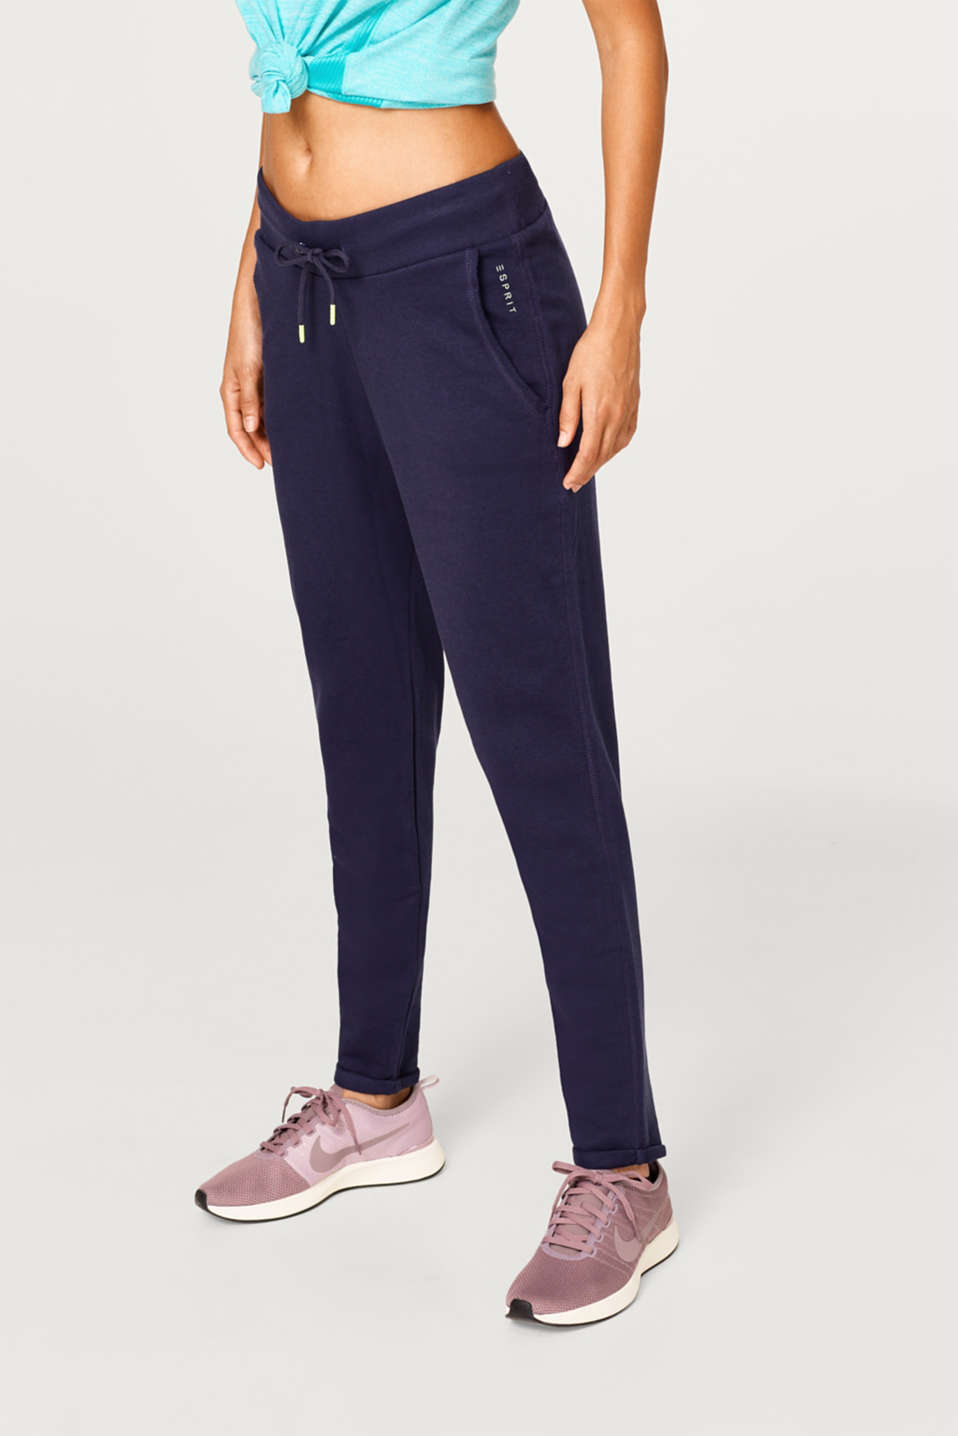 Esprit - Lightweight tracksuit bottoms with turn-up hems